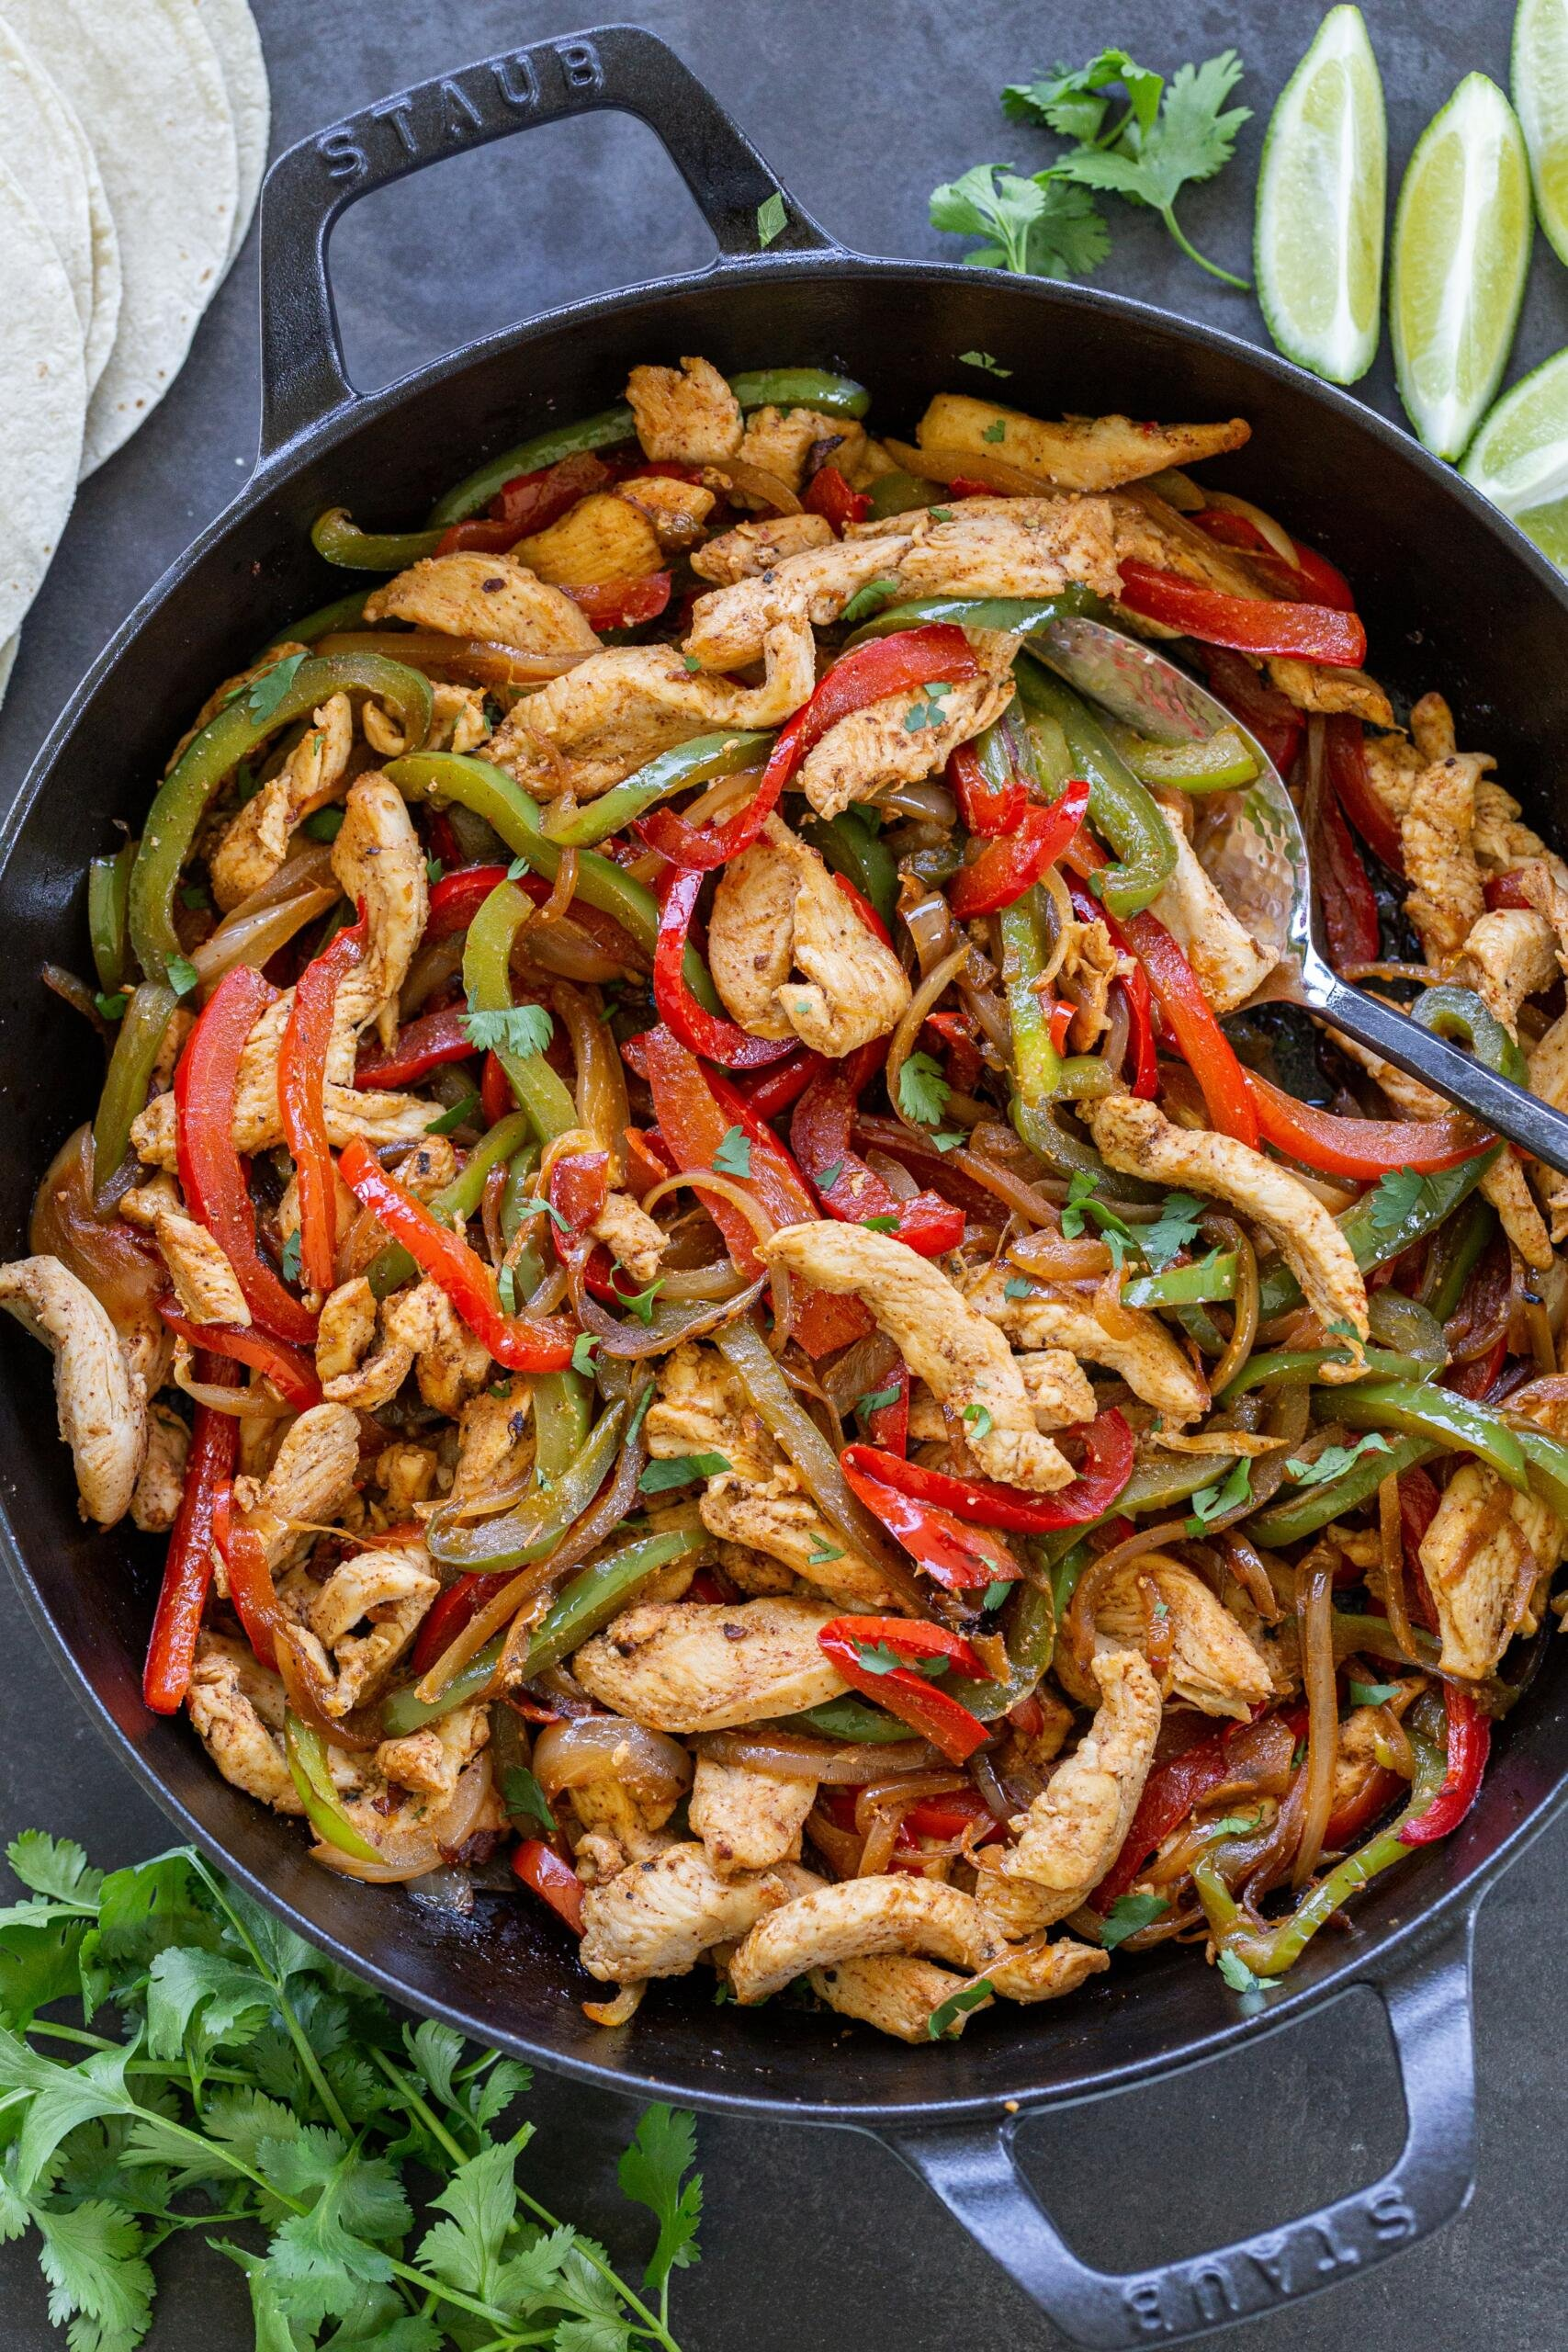 Chicken Fajita in a skillet